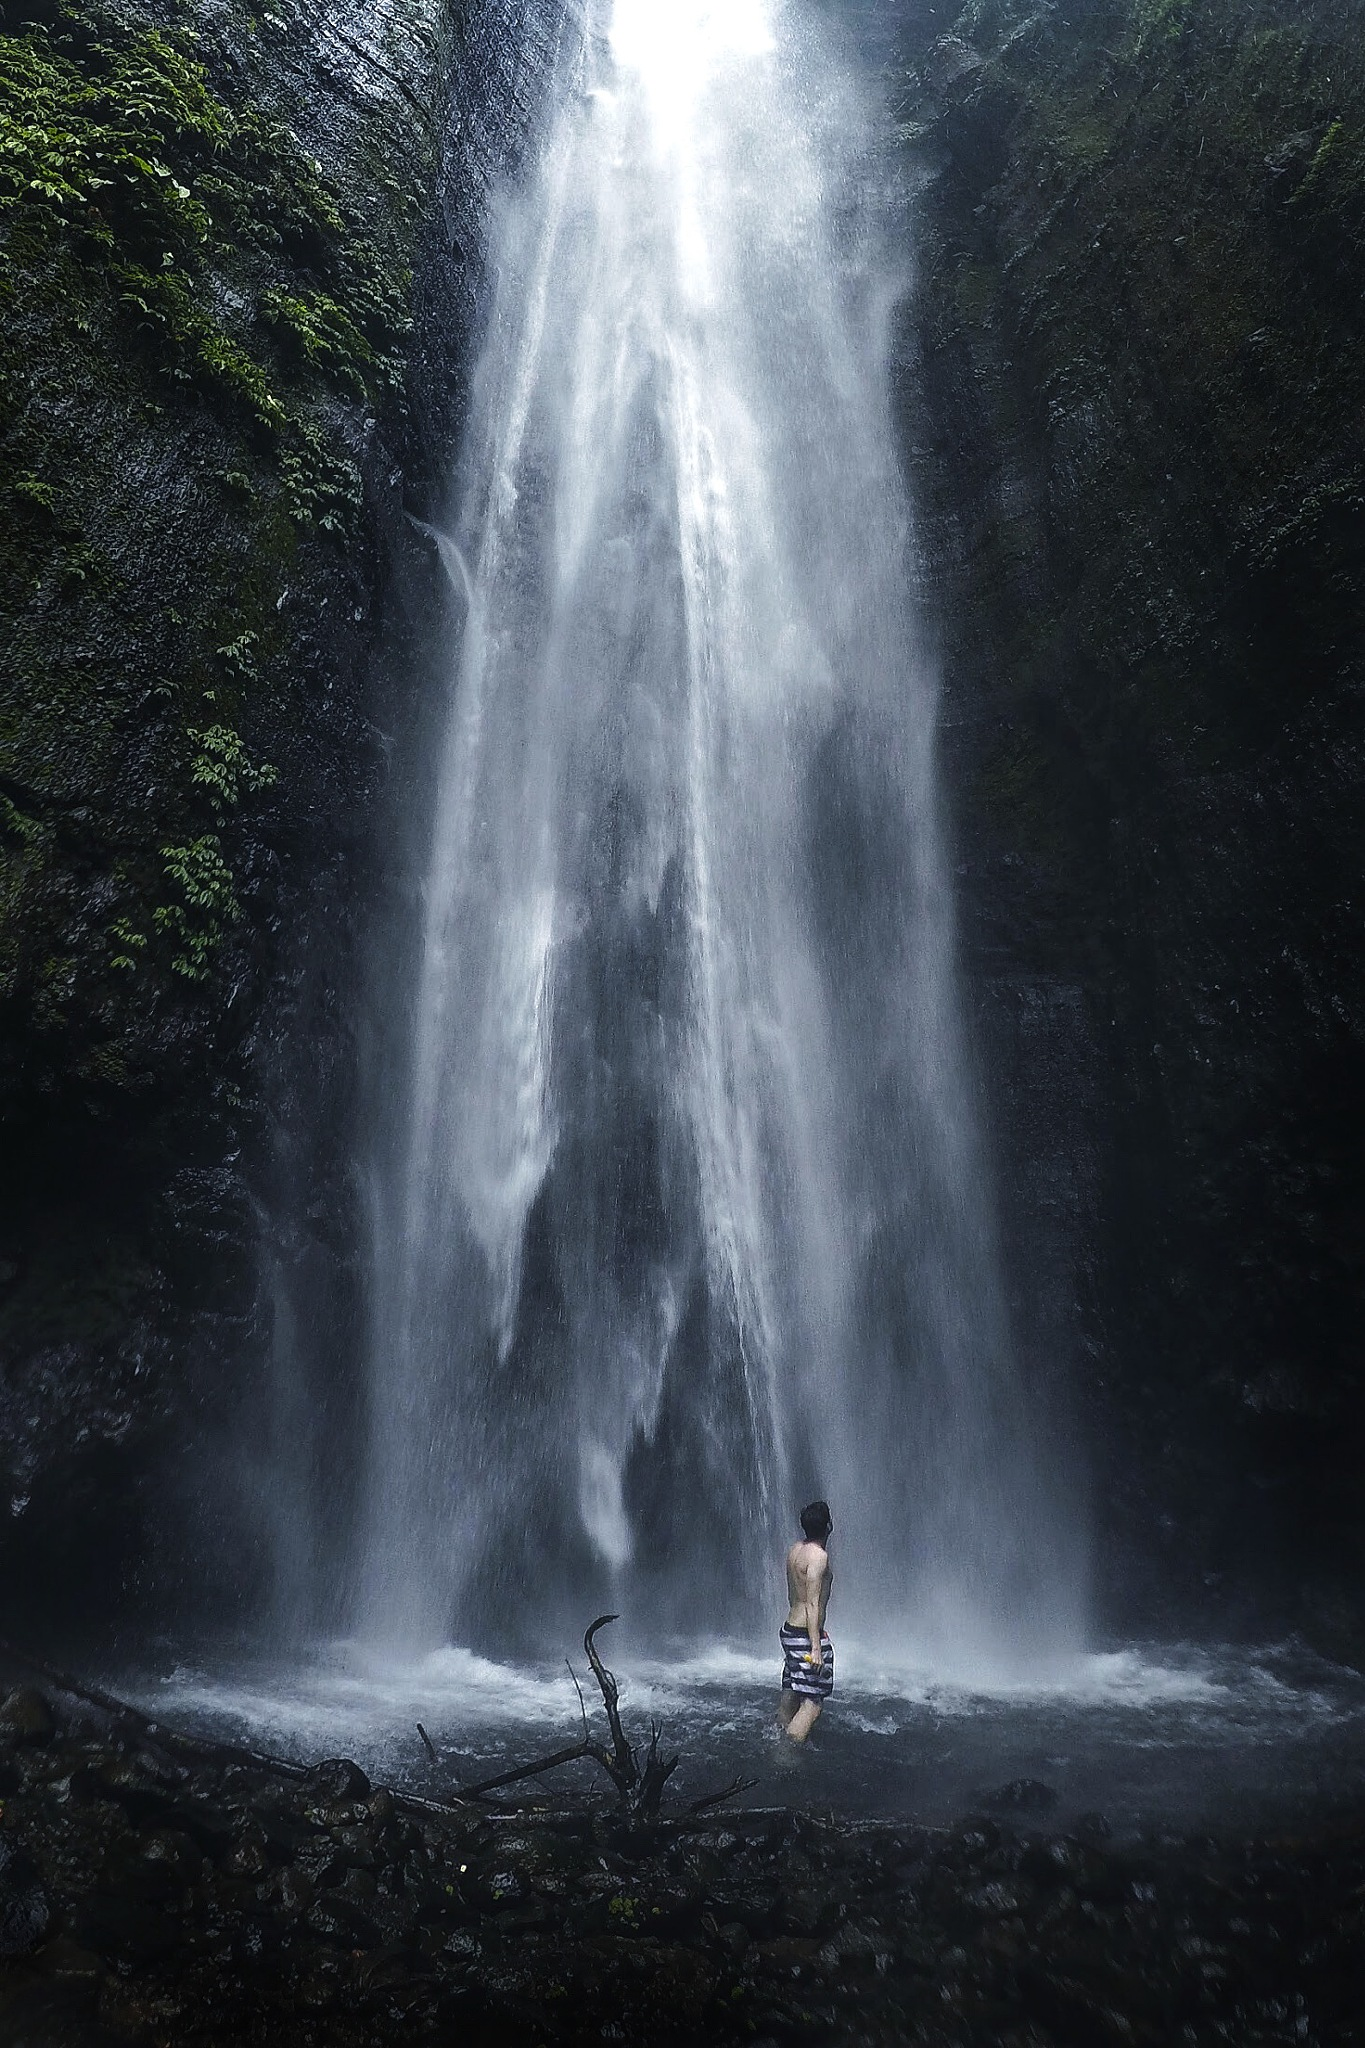 Just another Bali waterfall by Joseph Schnabel